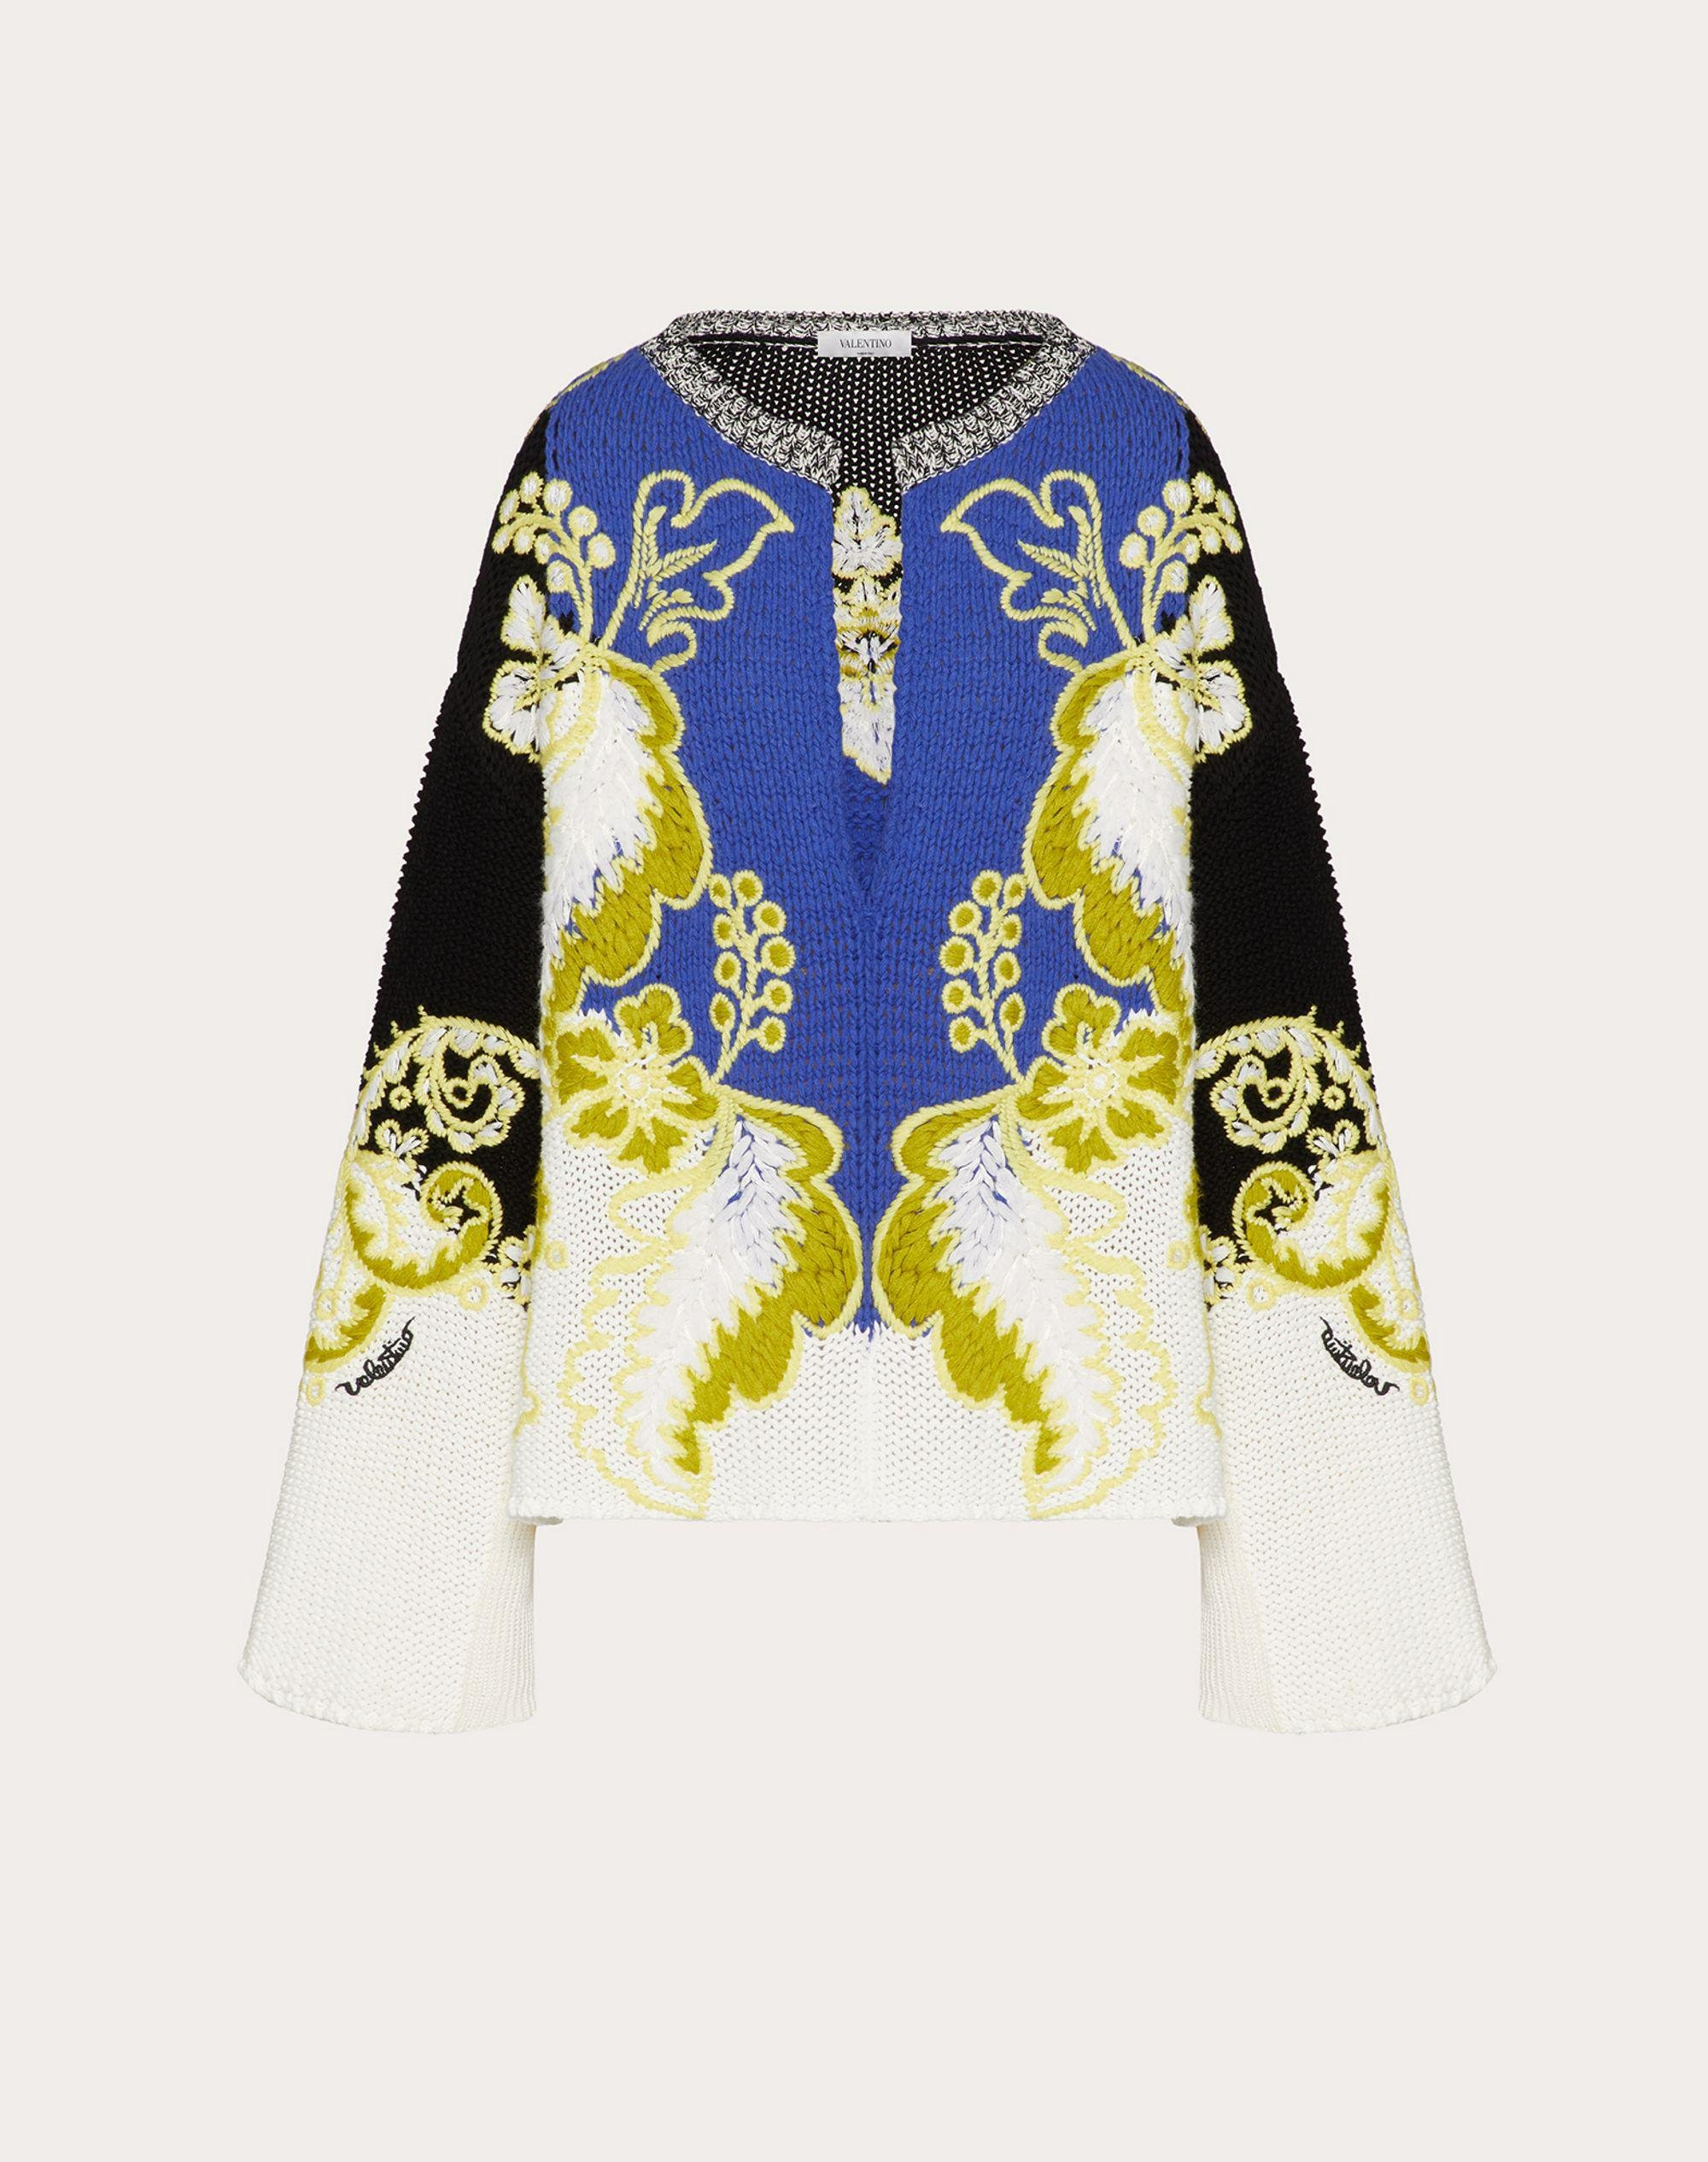 EMBROIDERED WOOL CASHMERE COTTON SWEATER 4